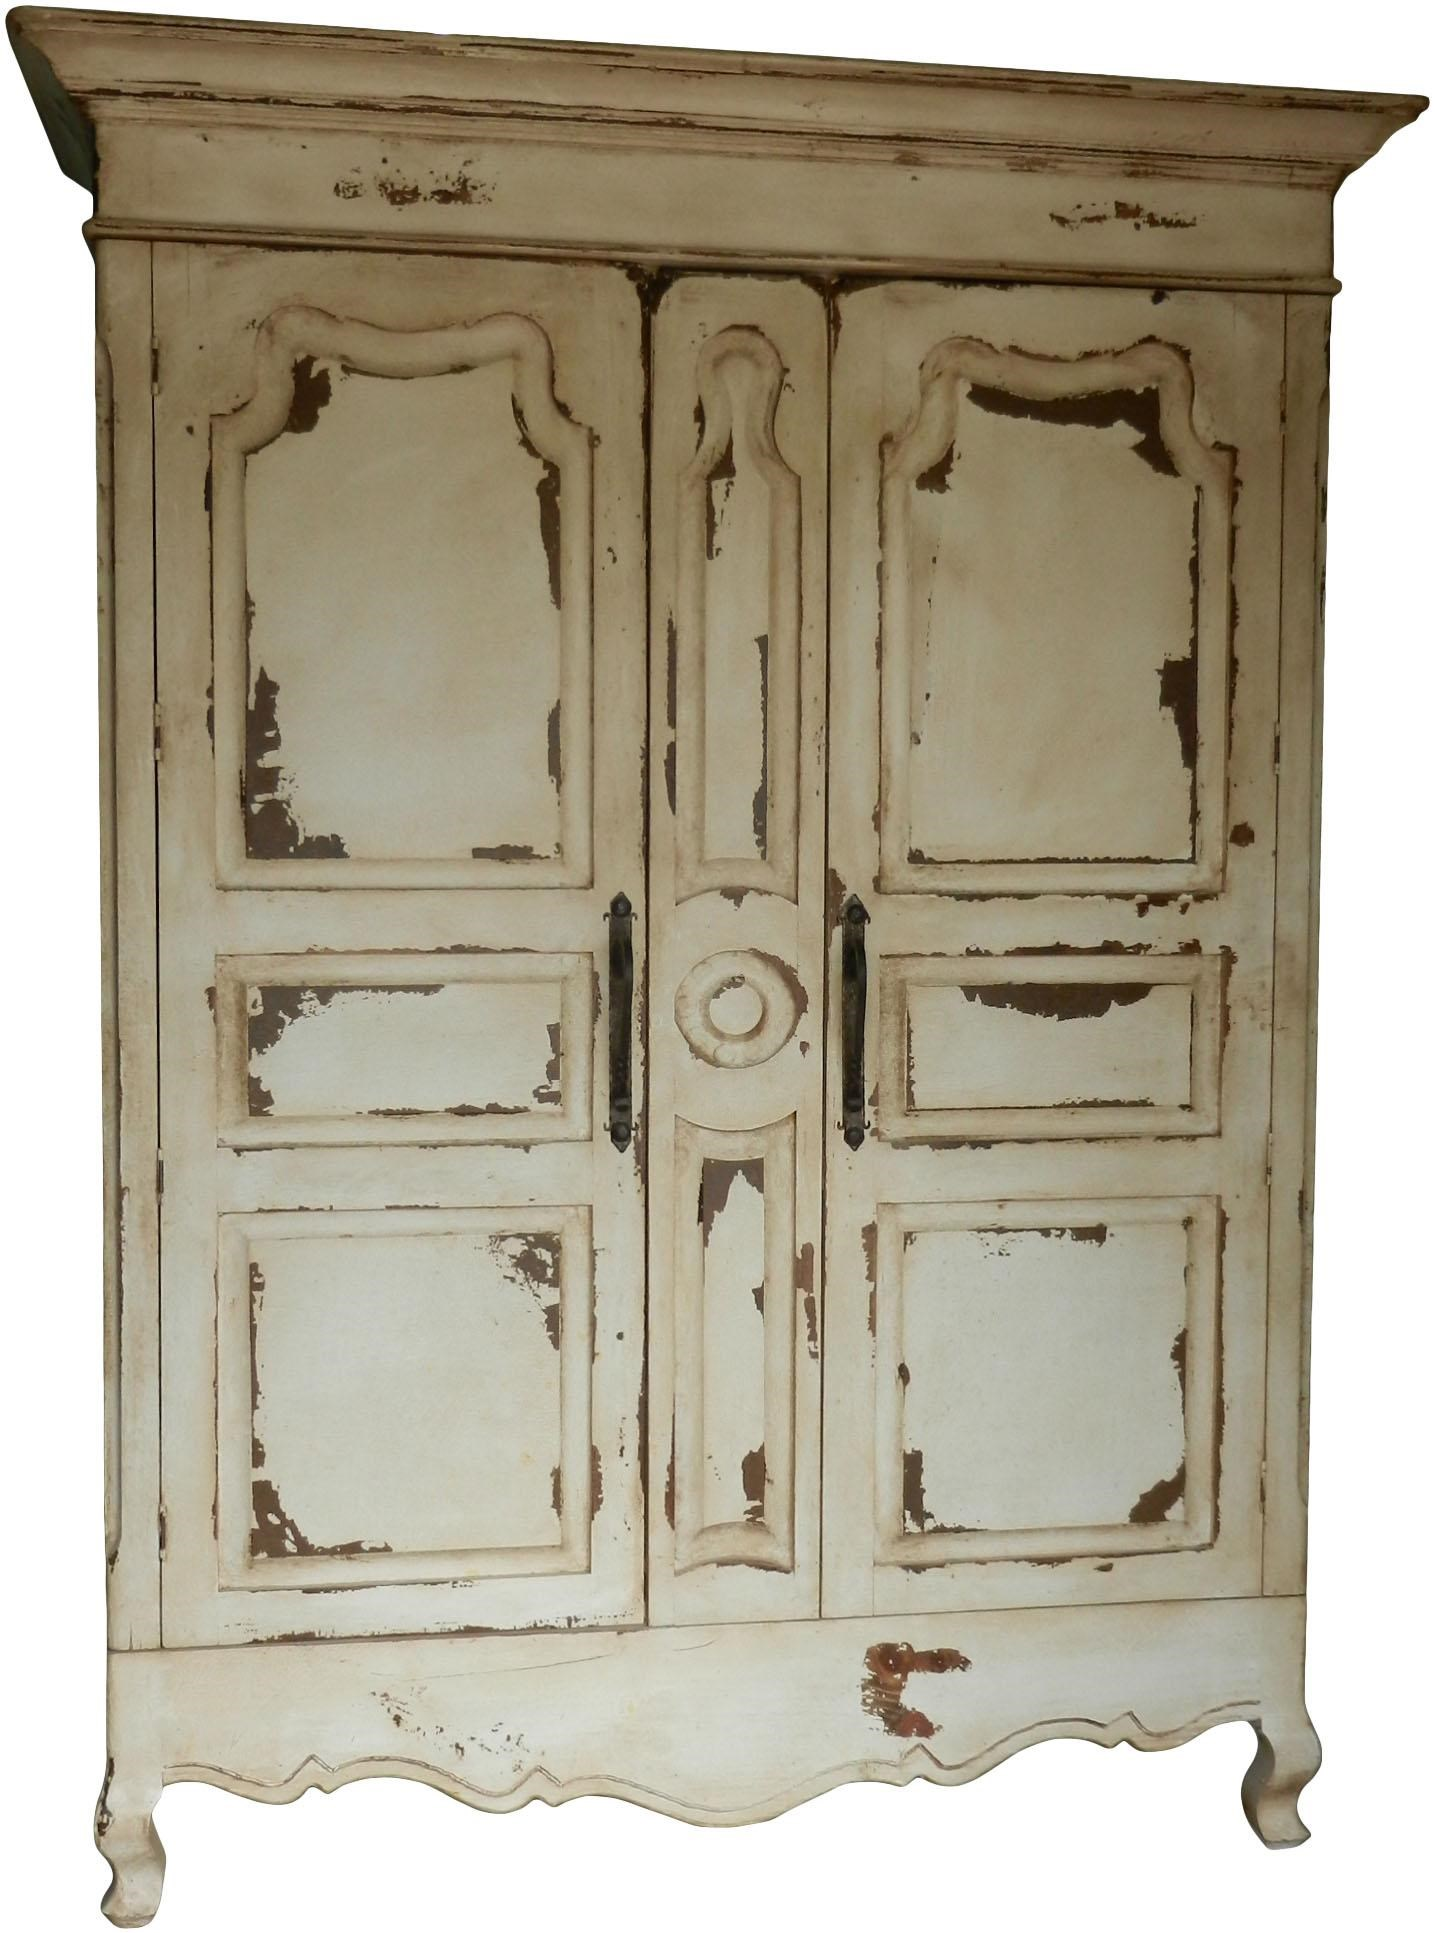 Furniture Source International Armoires Baronial Armoire W/ Carved Doors